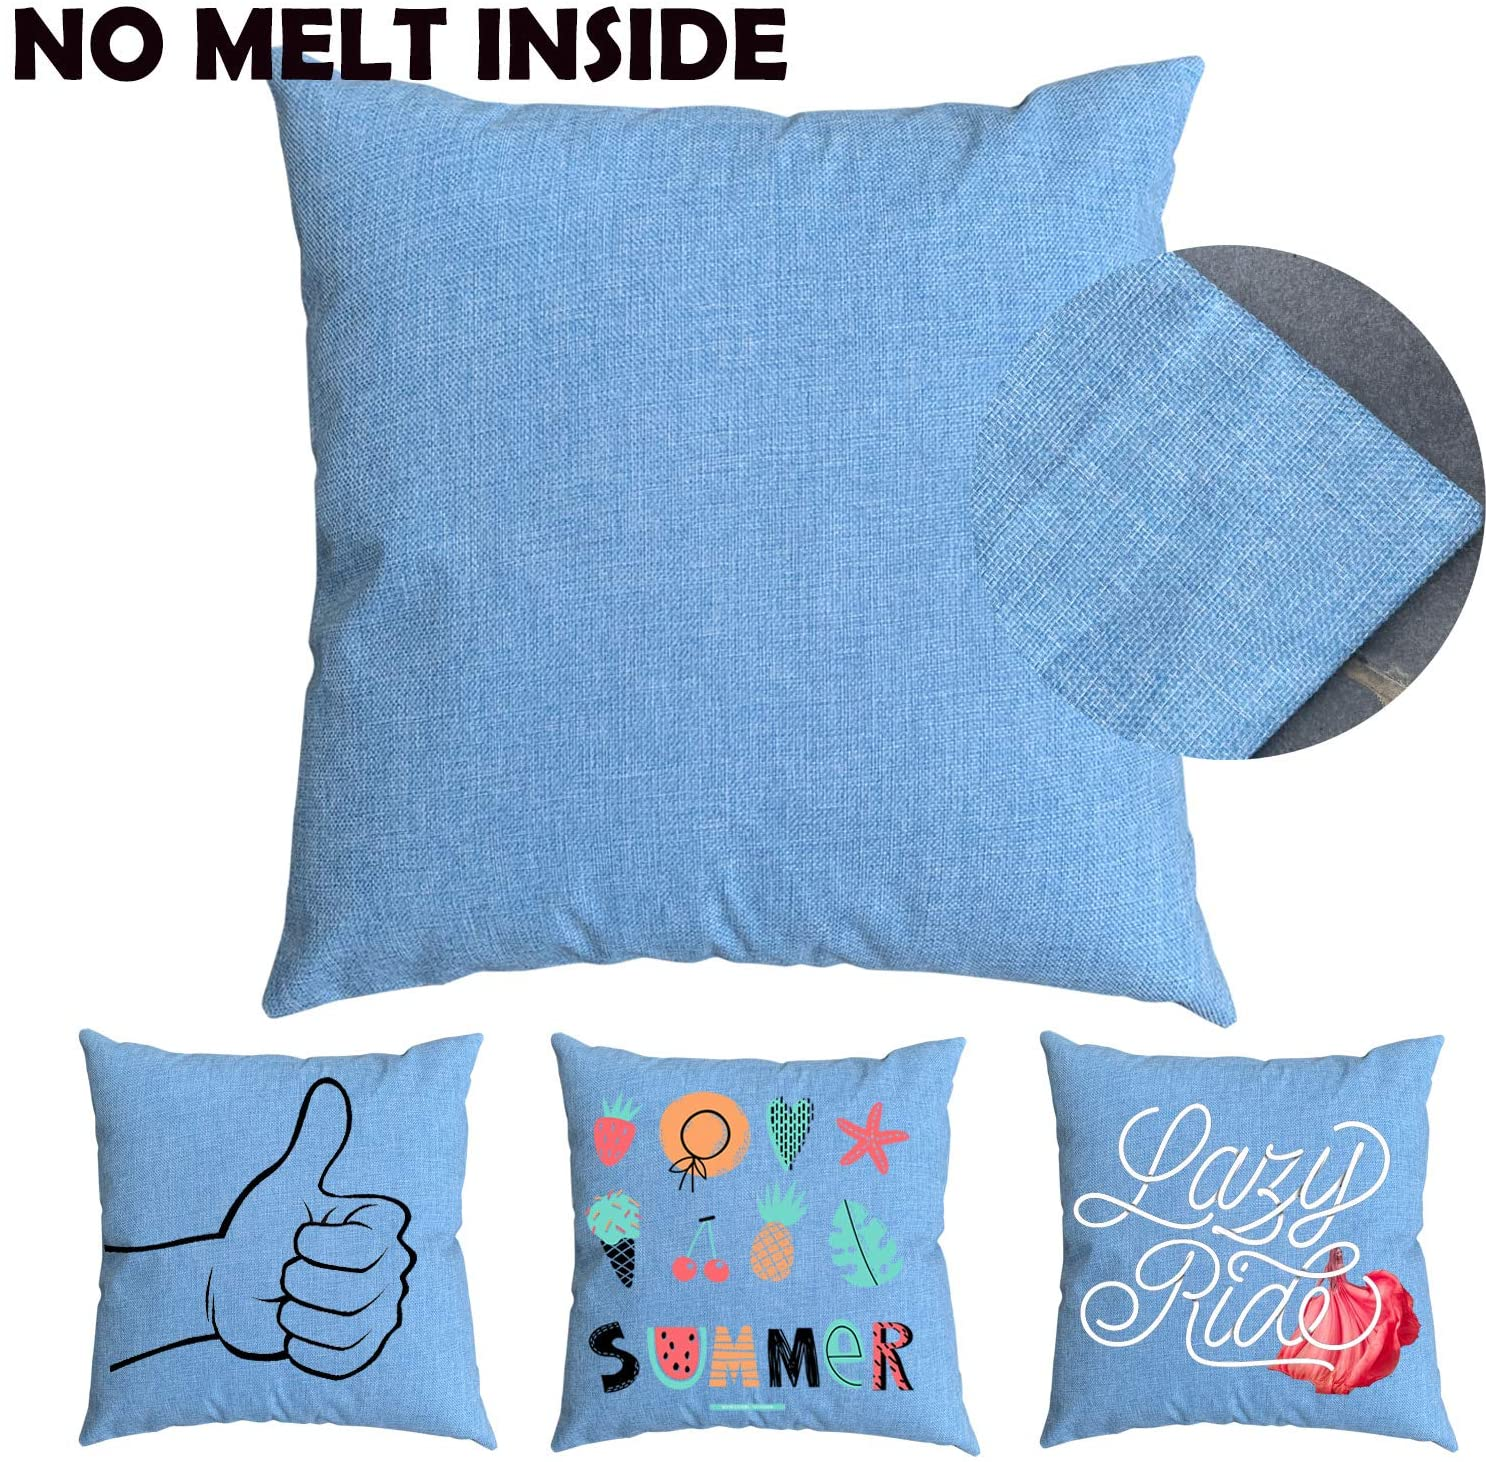 JUSTRY 4 PCS Blue 16 x 16 Inch Sublimation Blanks Linen Pillow Cases Cushion Cover Throw Pillow Covers for Sublimation Printing Sofa Couch DIY Blanks Pillow Case No Insert